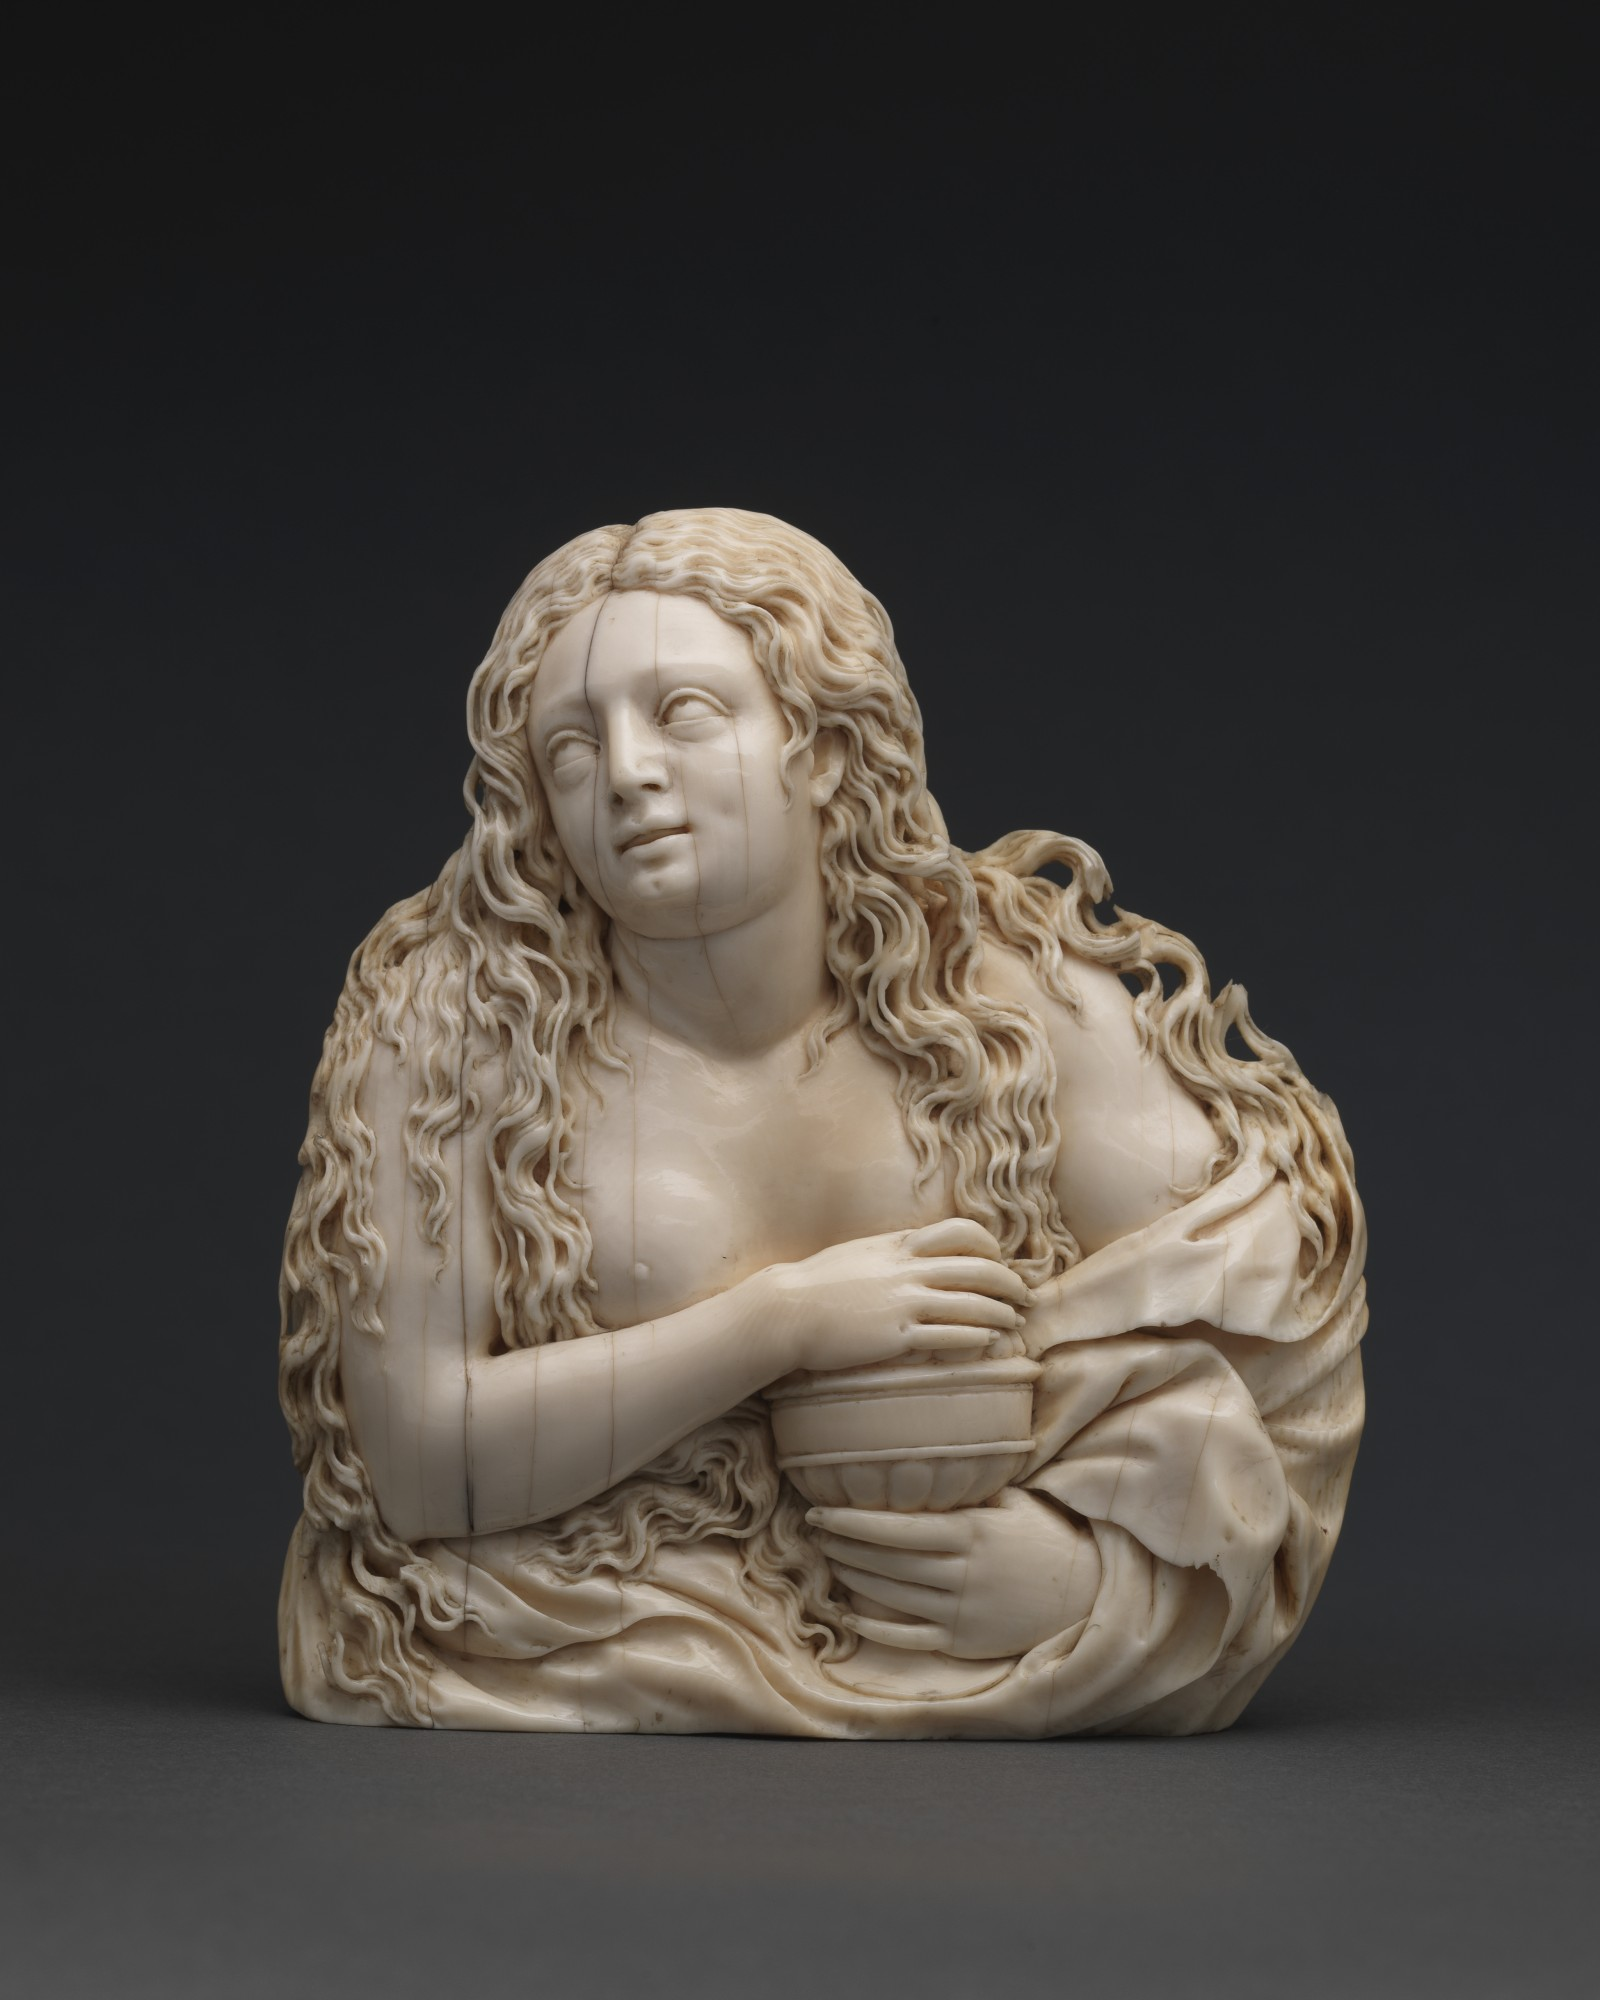 Relief with Mary Magdalene, Southern Germany, mid 17th century